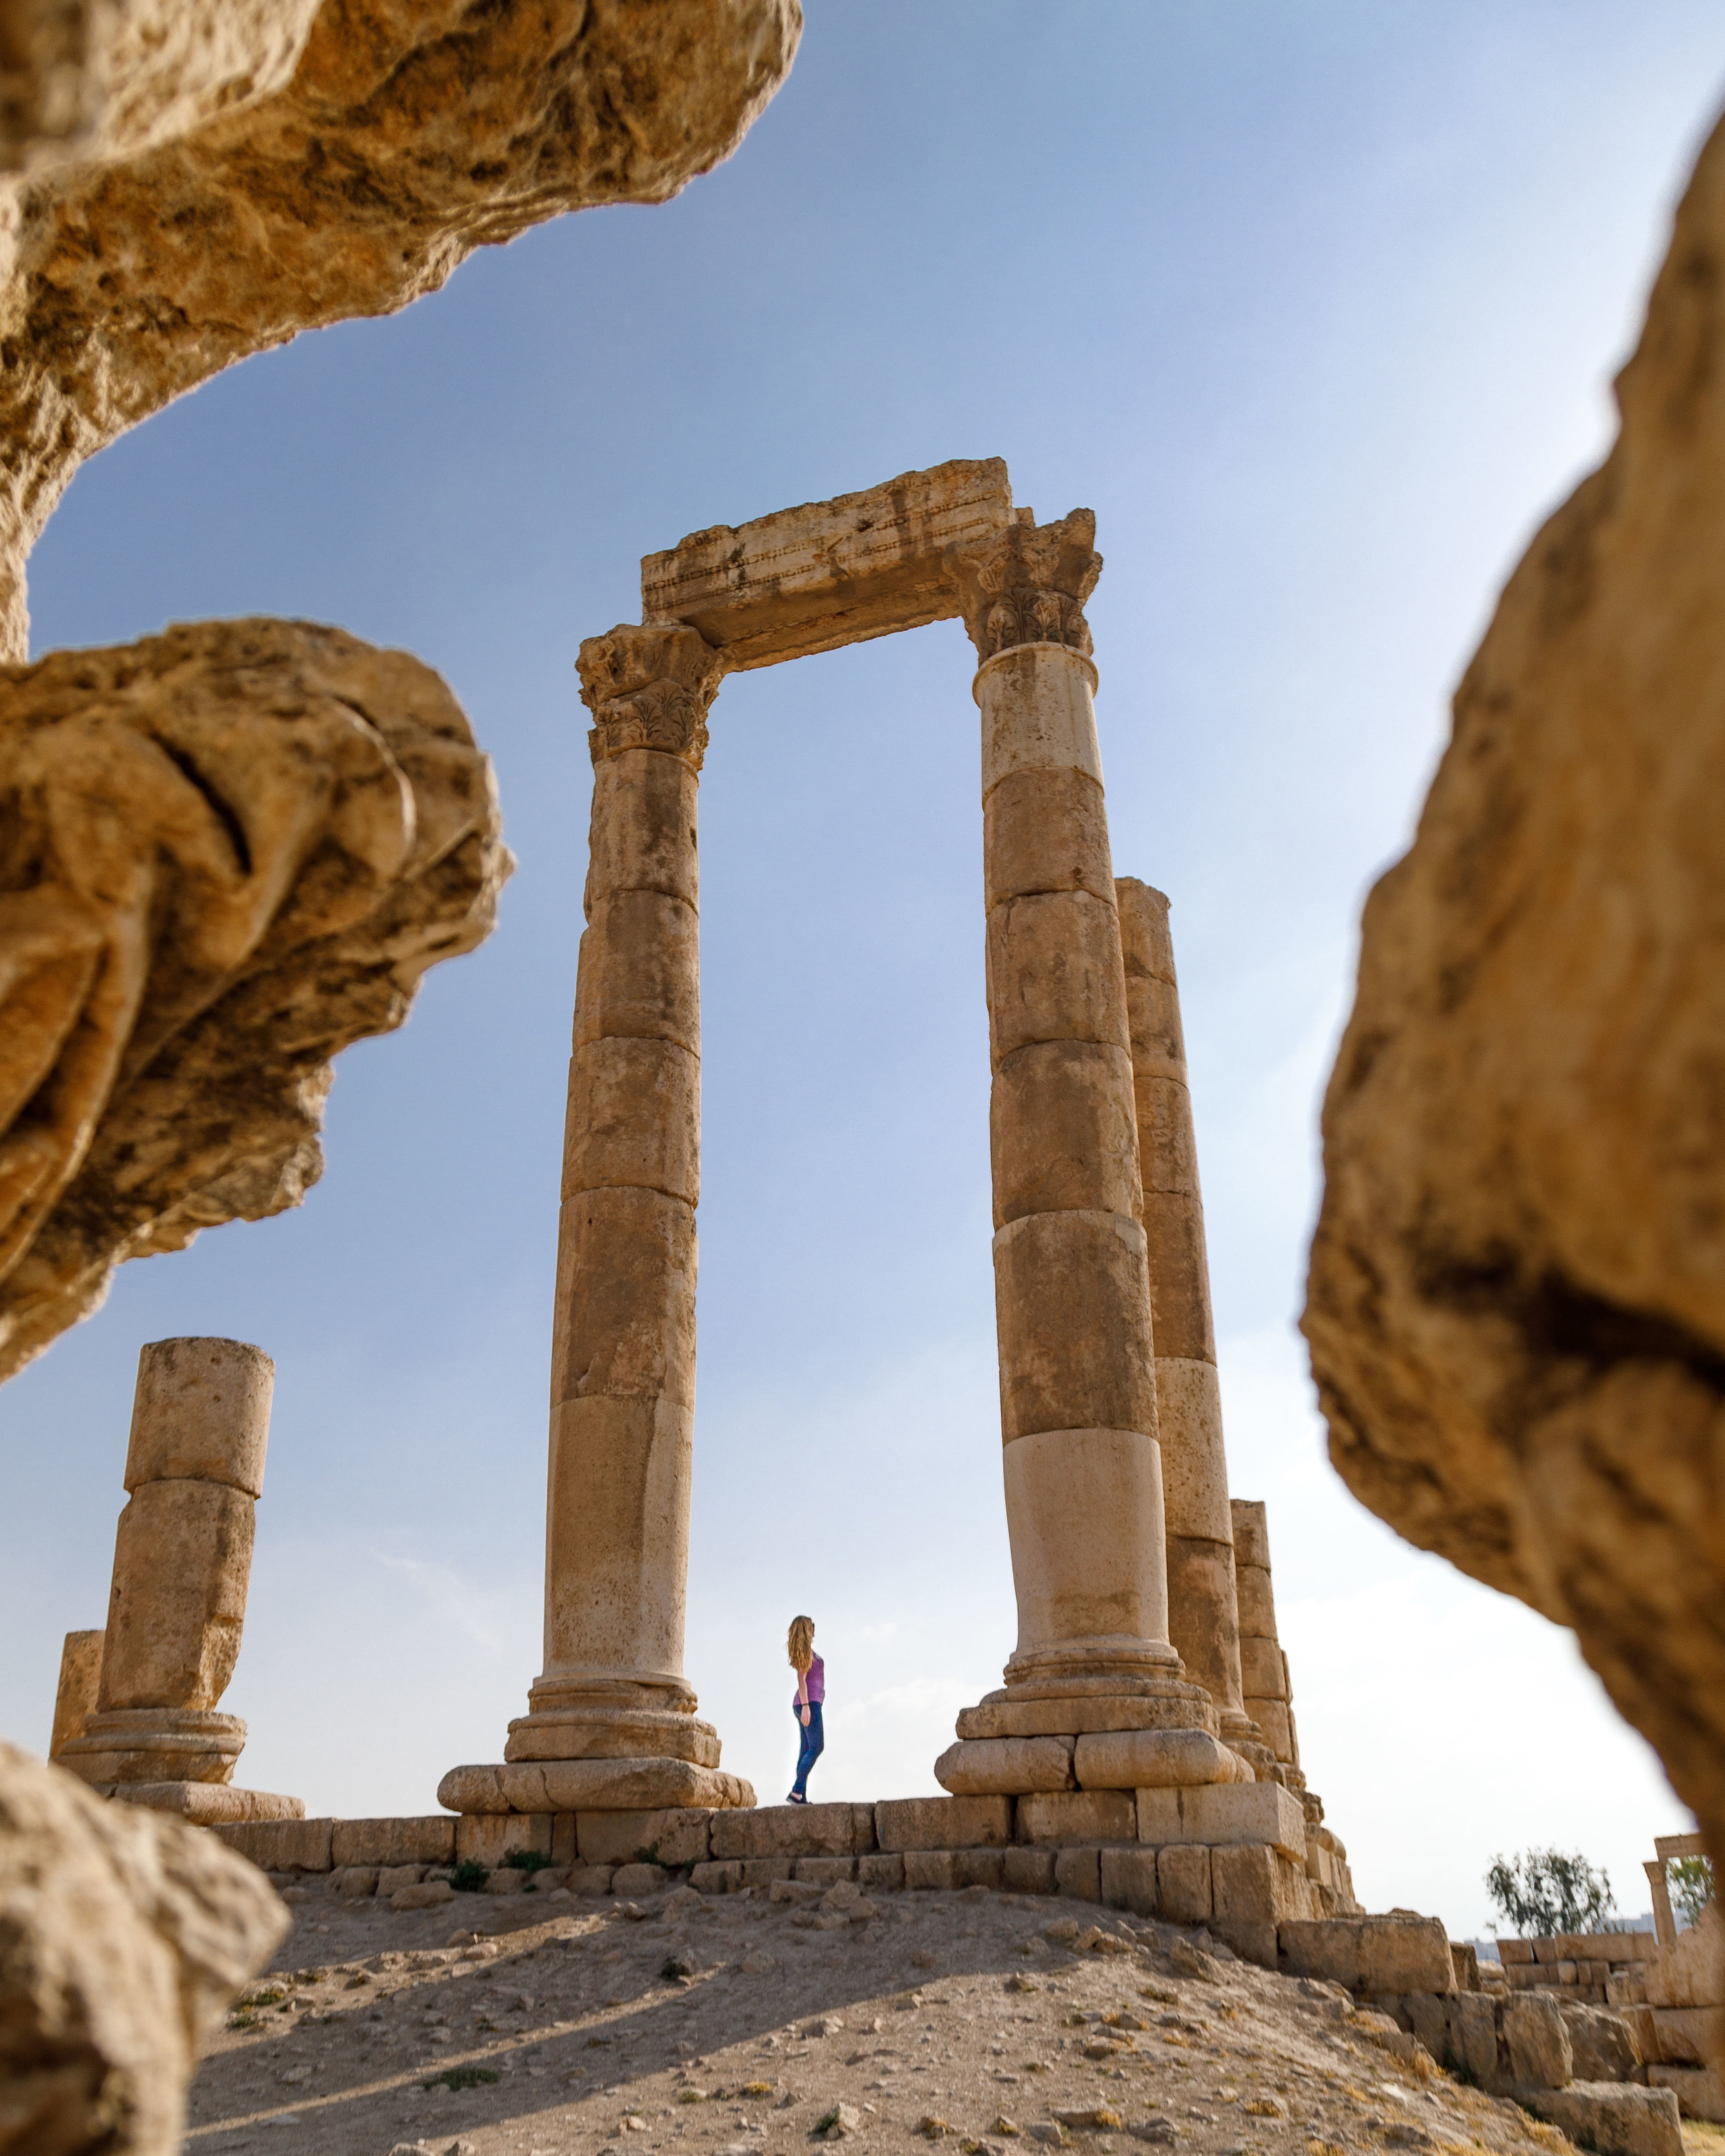 Instagrammable spots in Jordan - The Citadel